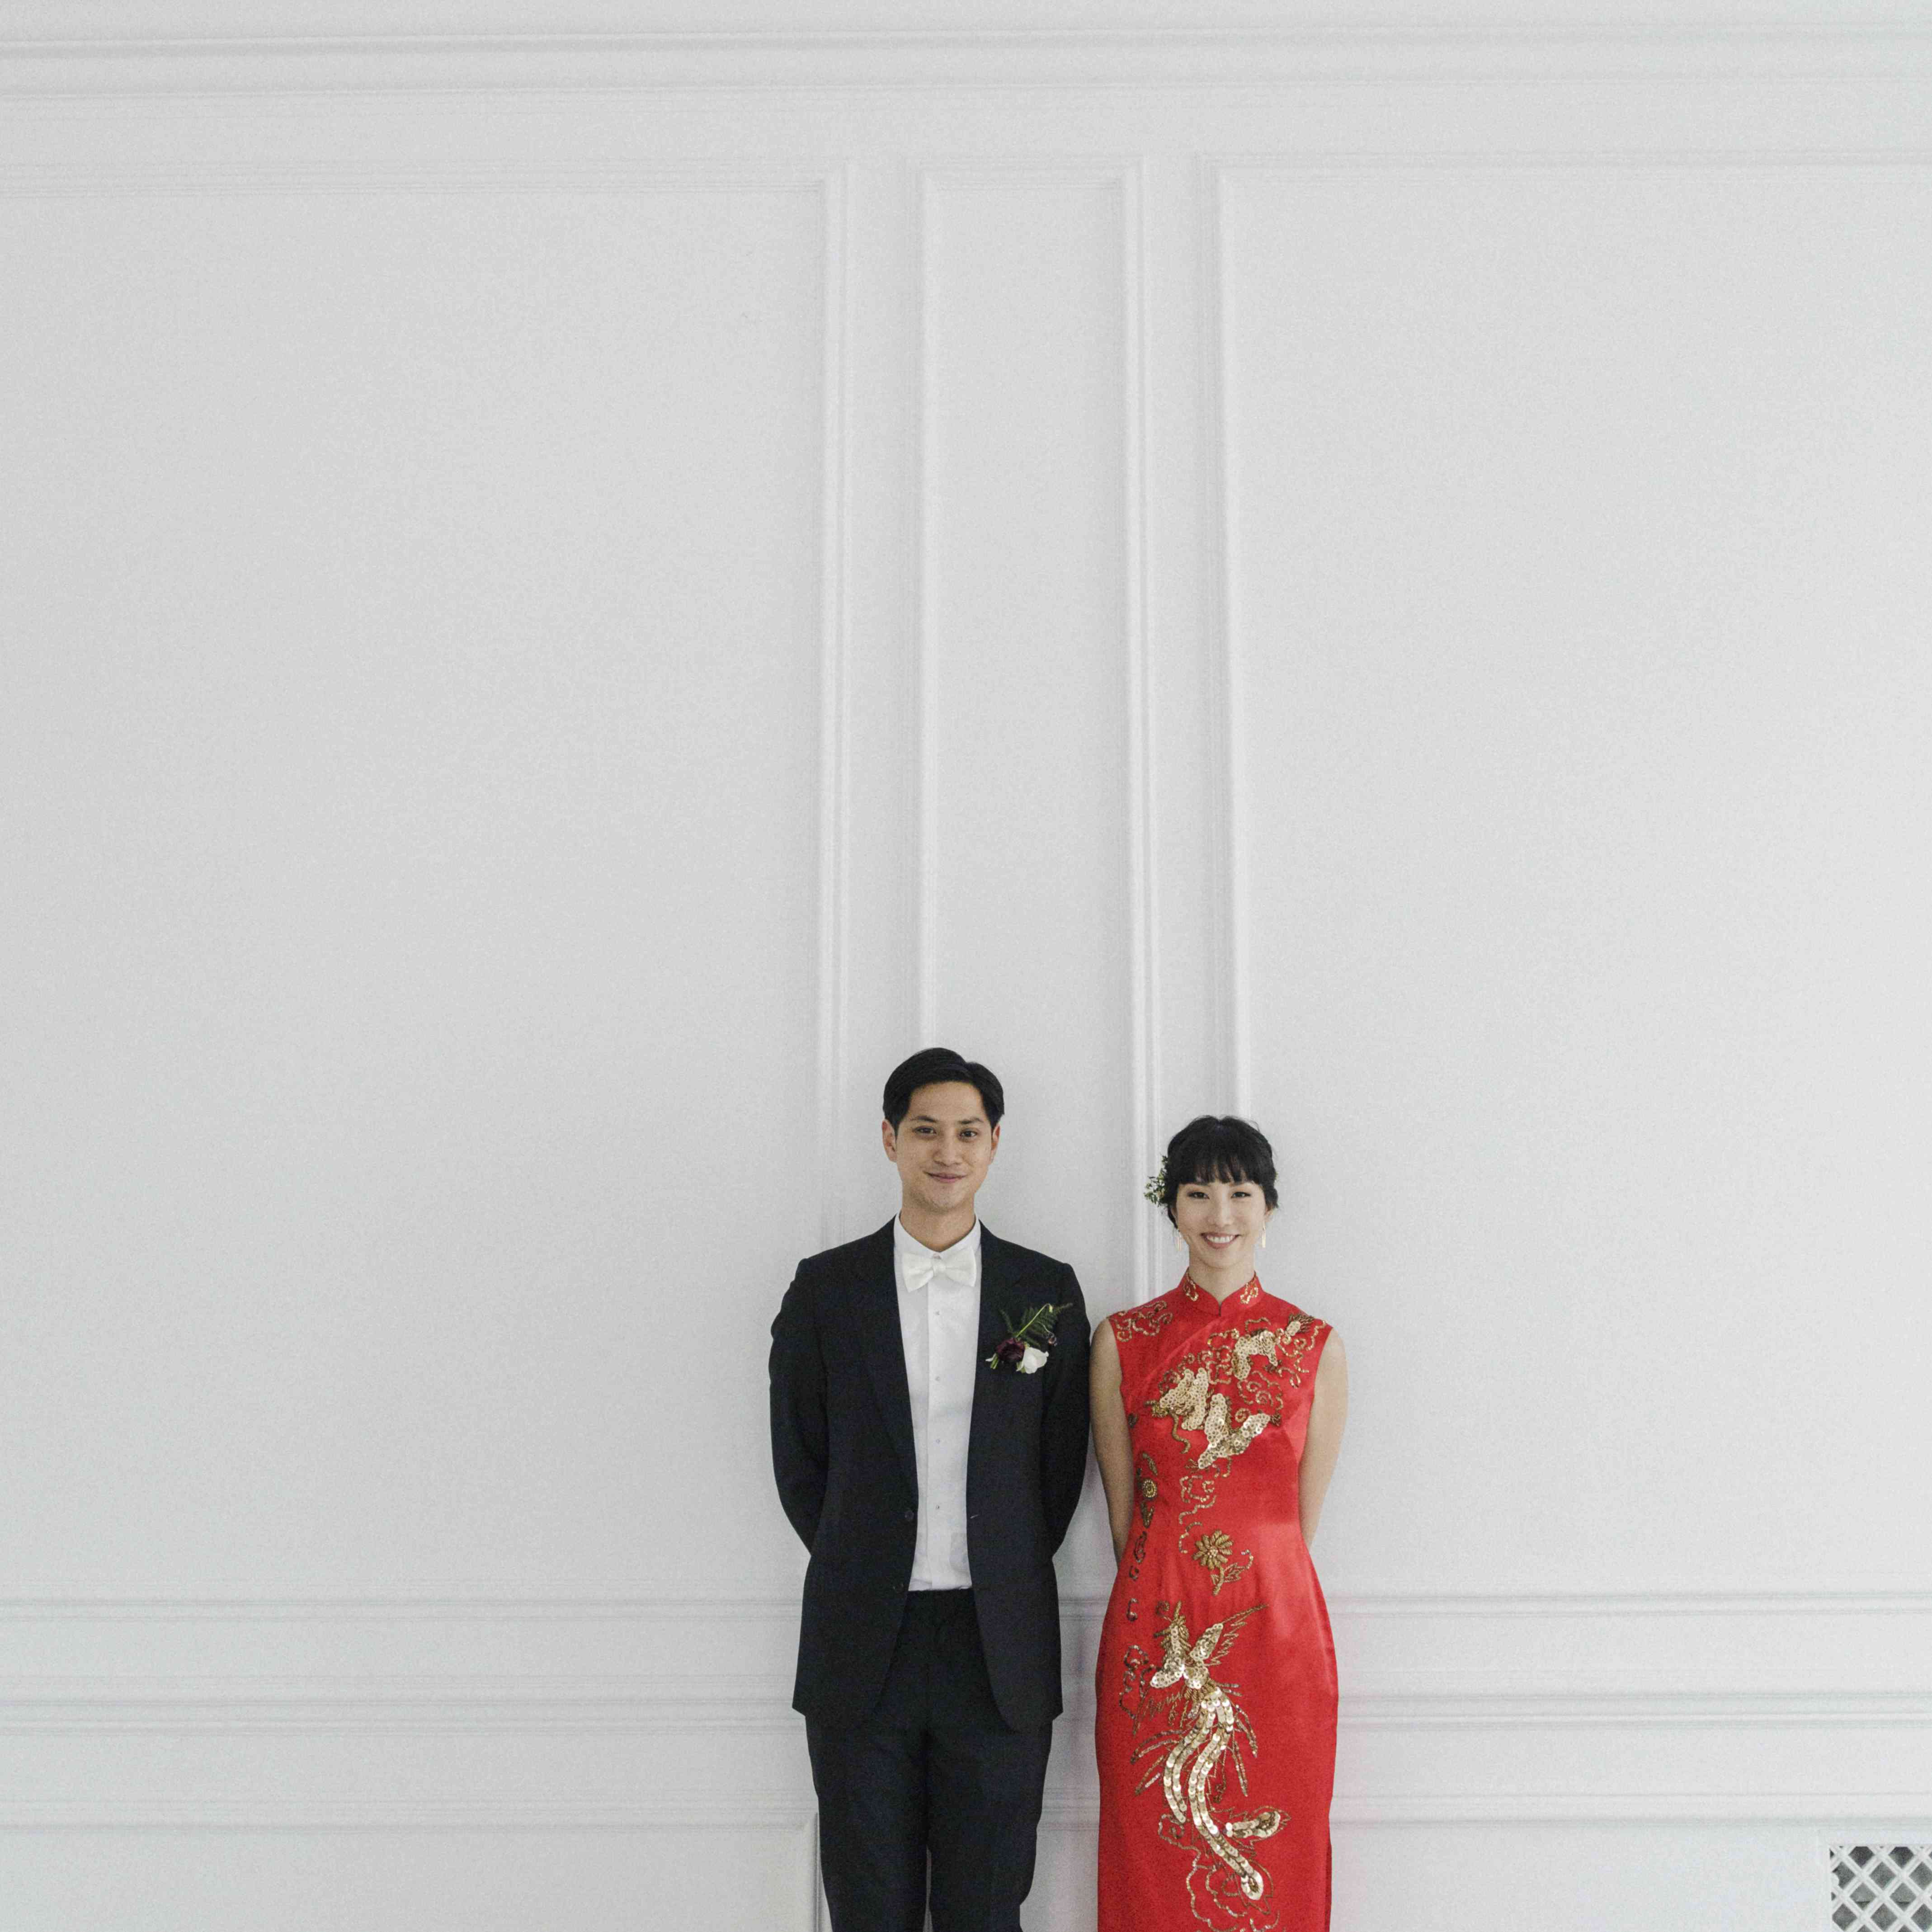 Bride and groom against white wall